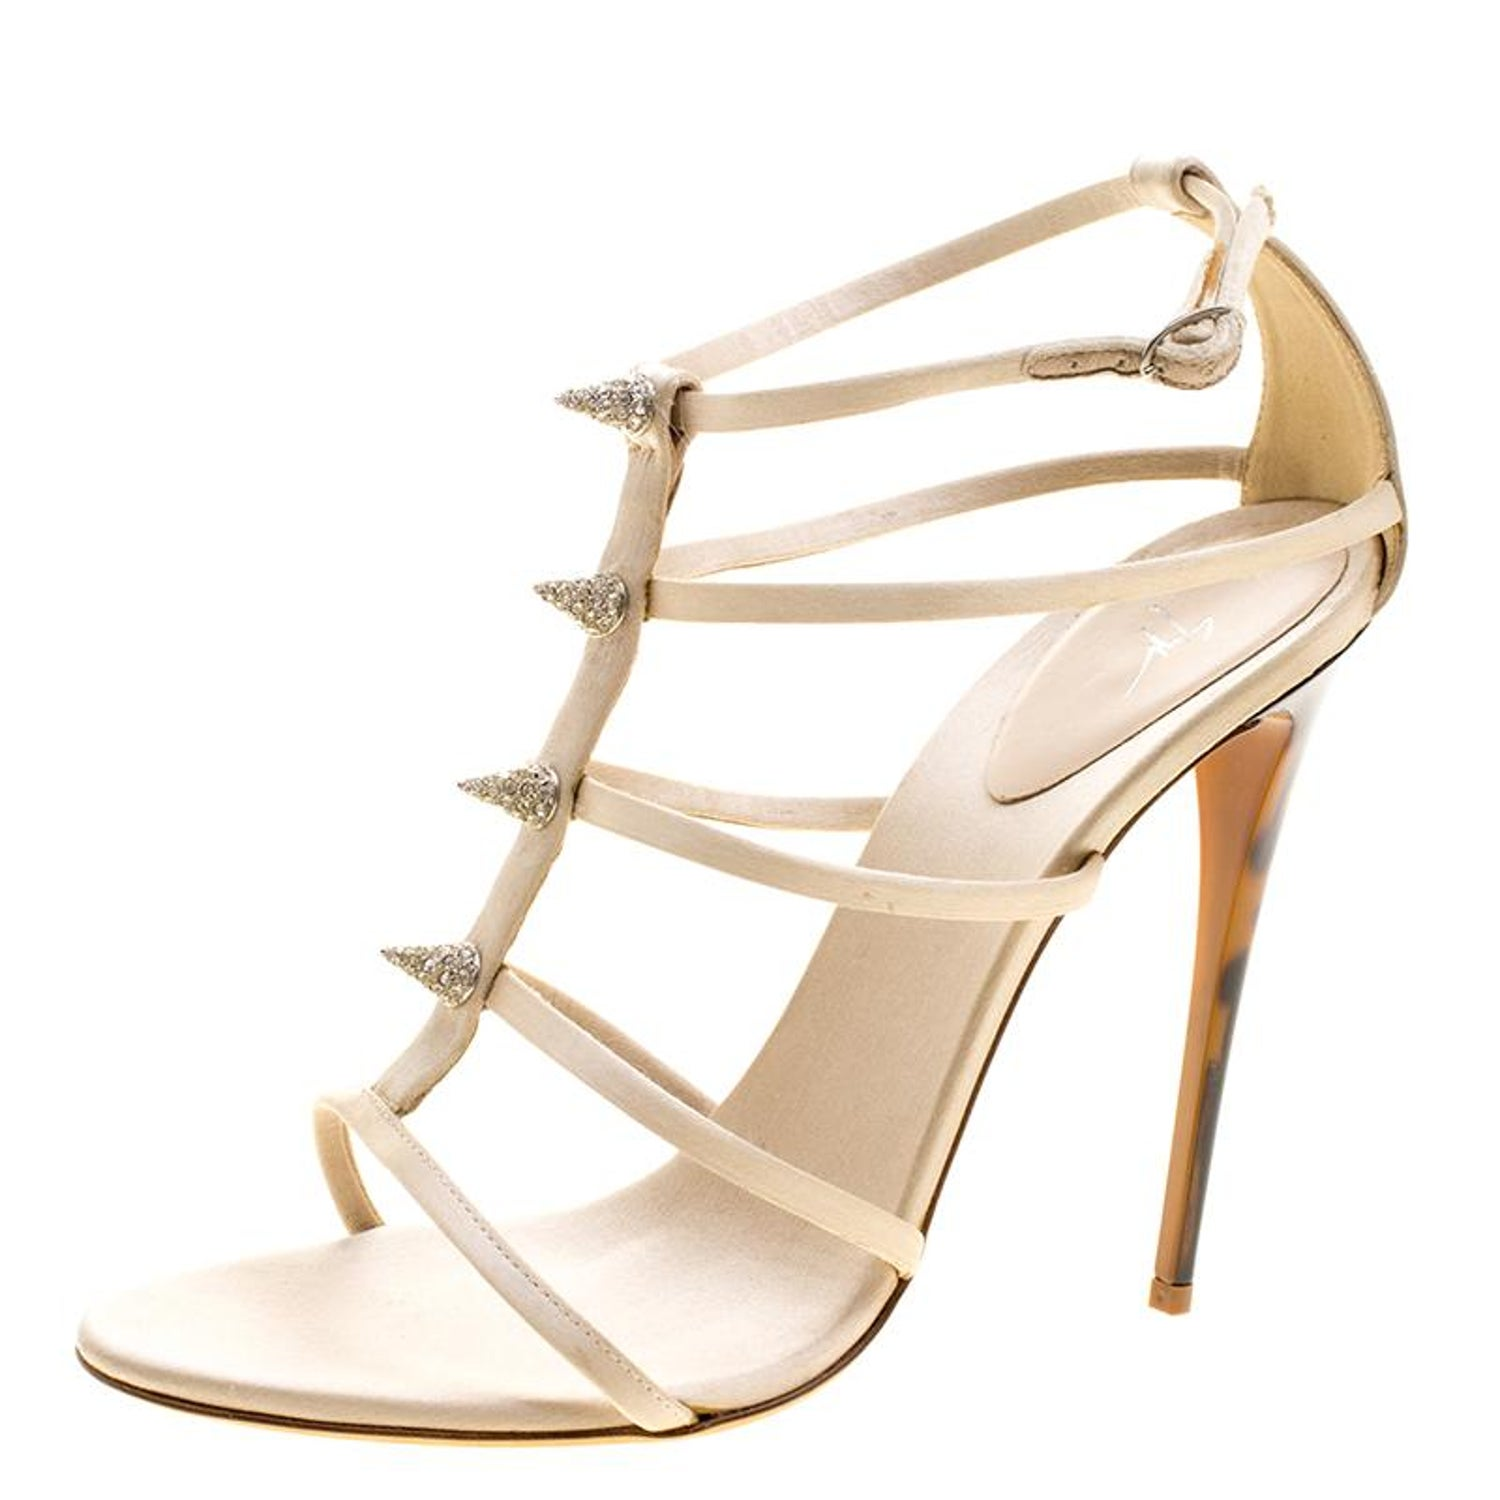 75c79d6dc3167 Giuseppe Zanotti Beige Crystal Embellished Satin Tortoise Heel Strappy  Sandals S For Sale at 1stdibs